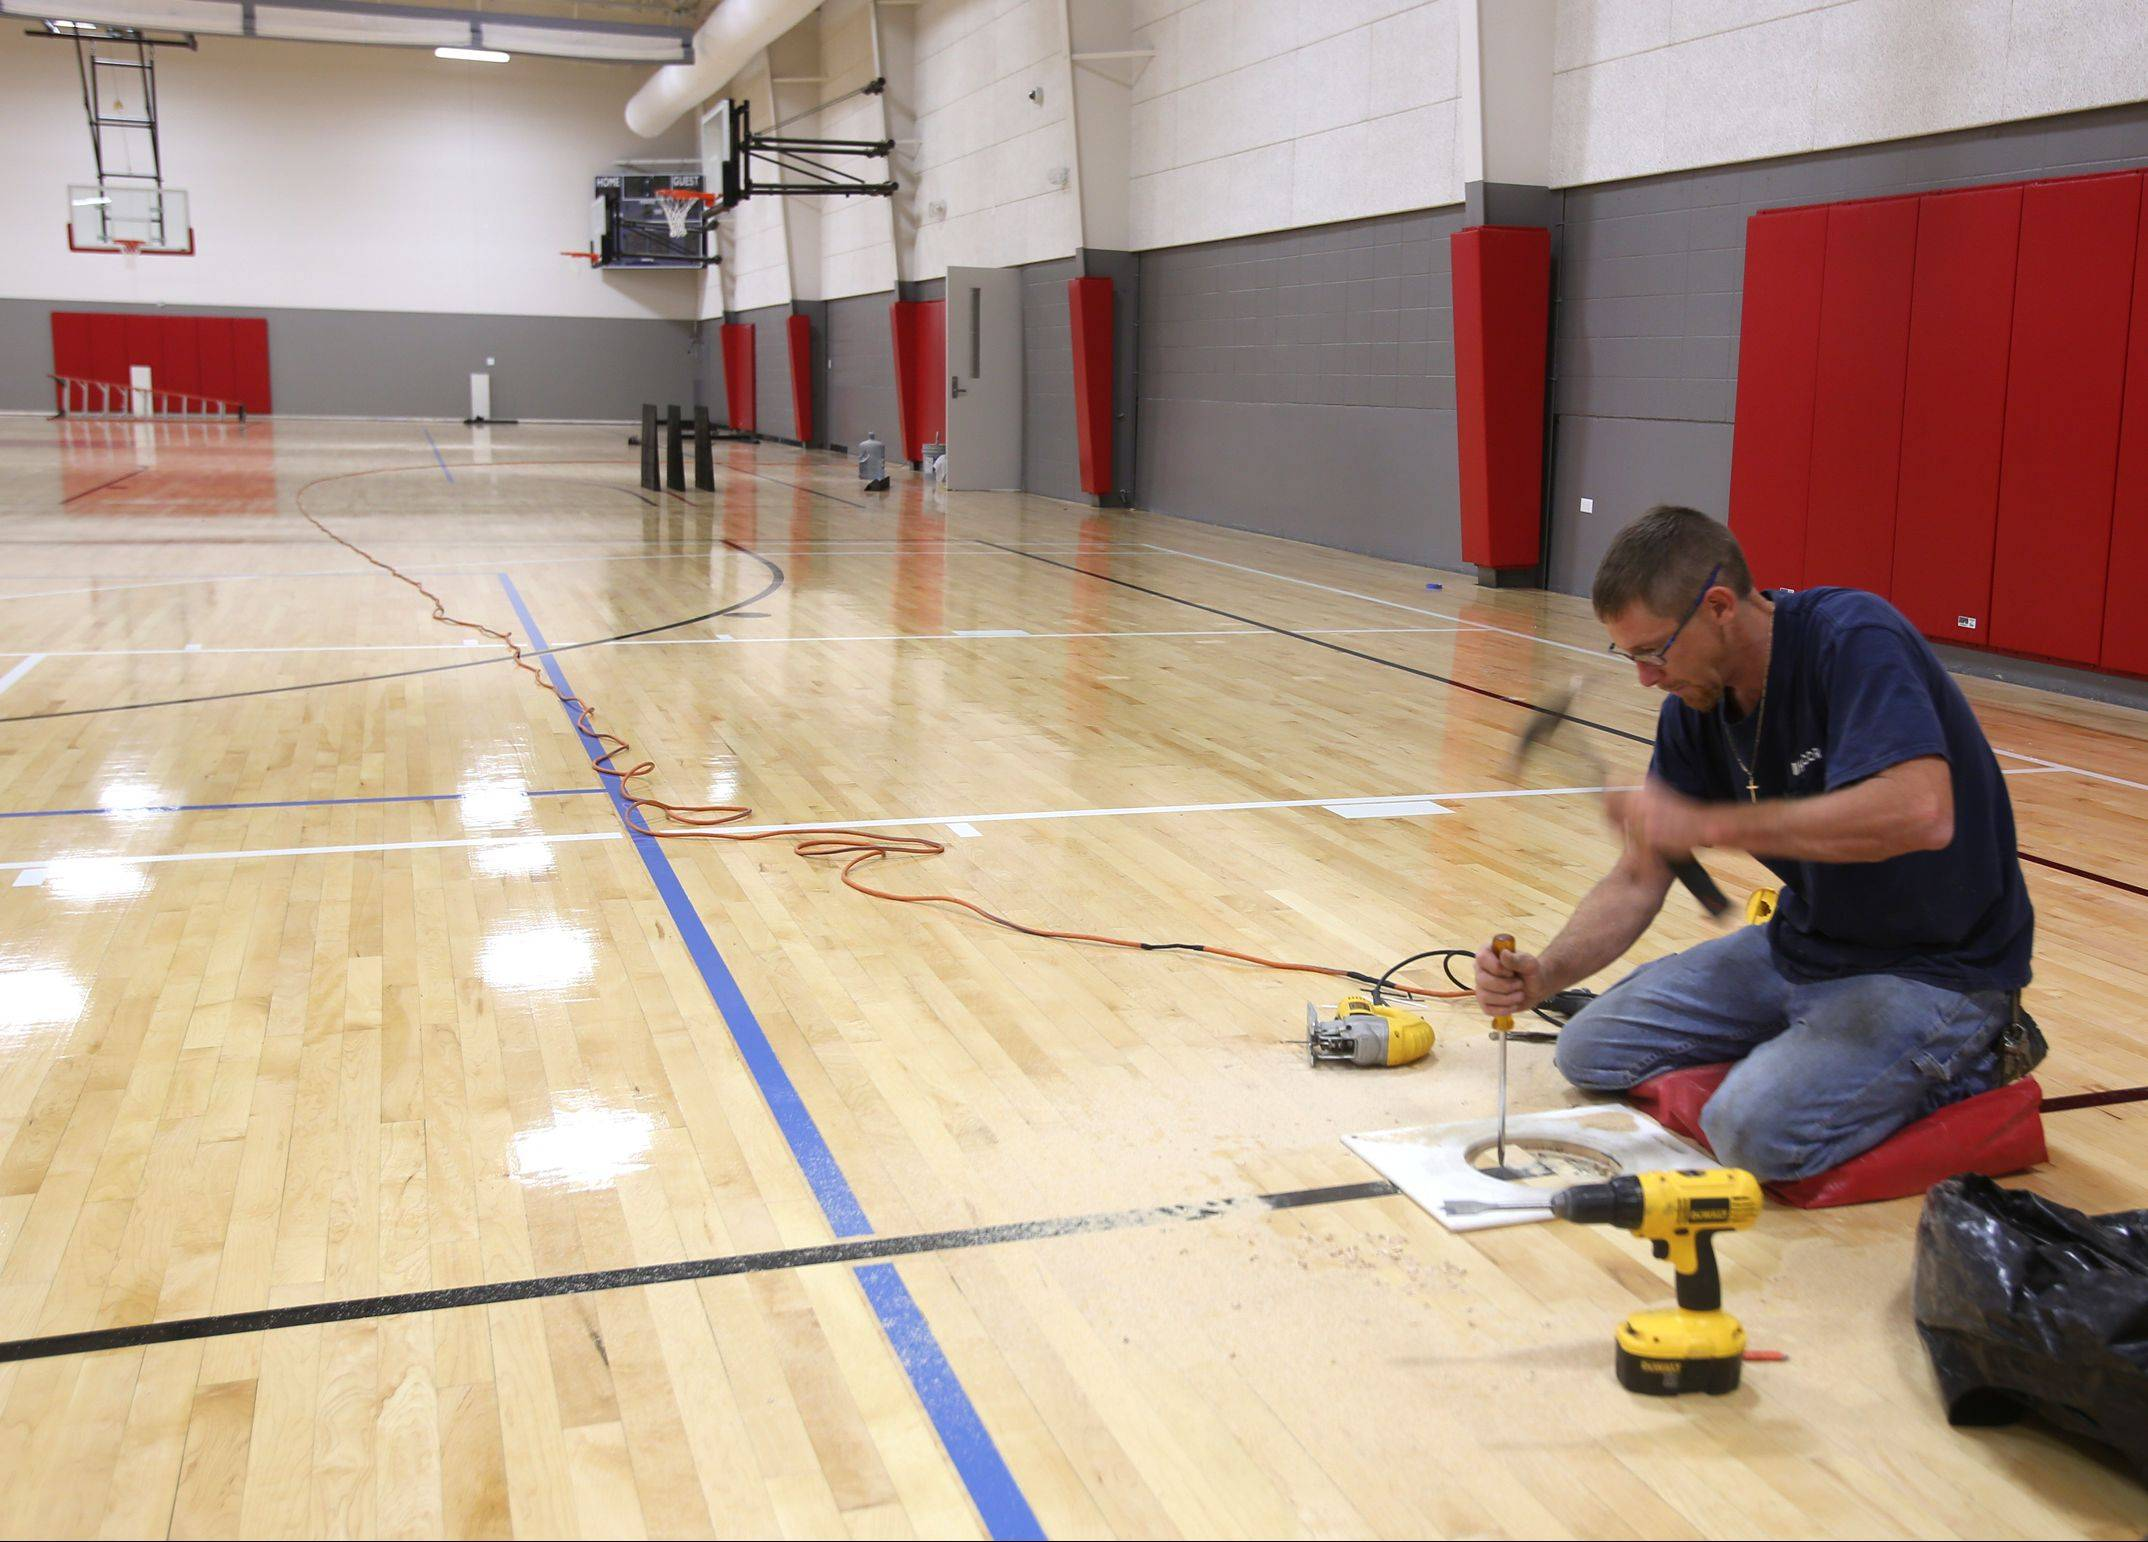 A new volleyball/basketball court is readied Thursday by carpenter Jeremy Cavanagh in advance of the grand reopening of the Glendale Heights Sports Hub this weekend.